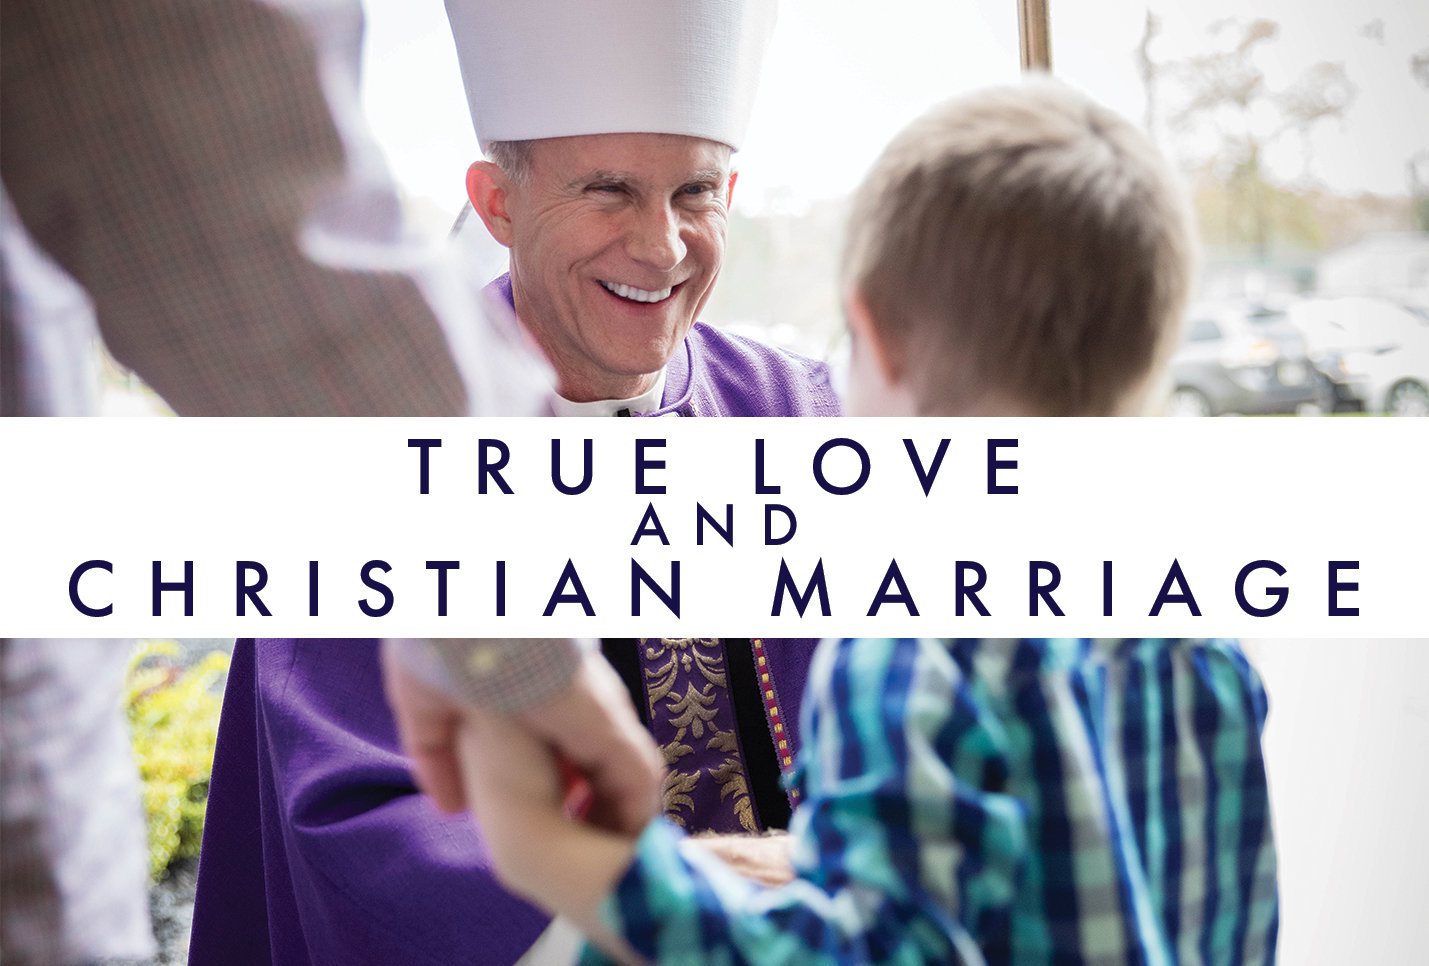 True Love and Christian Marriage